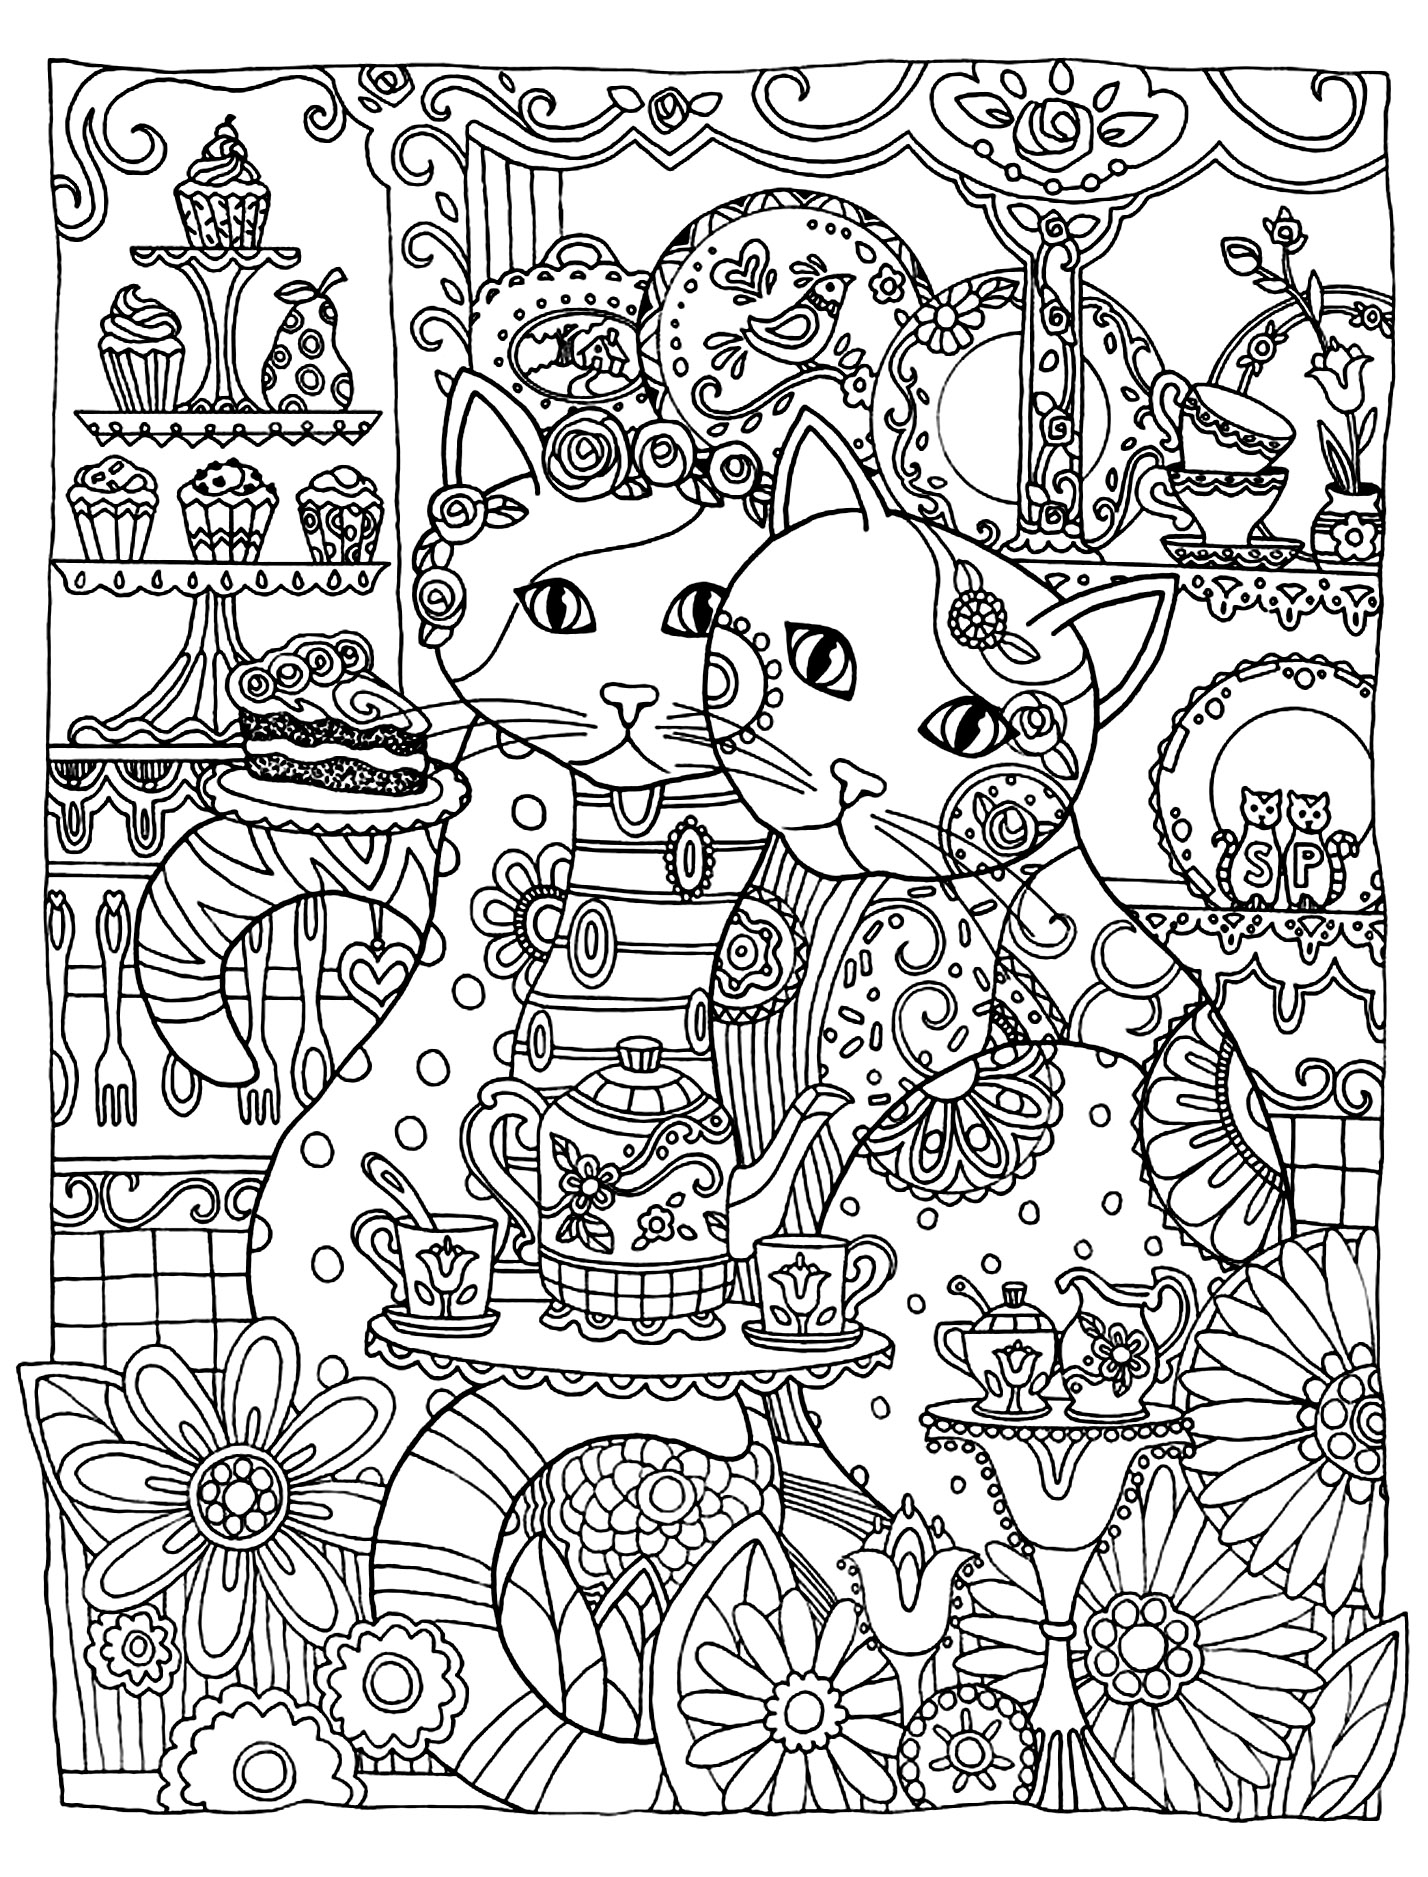 two cute cats animals coloring pages for adults justcolor